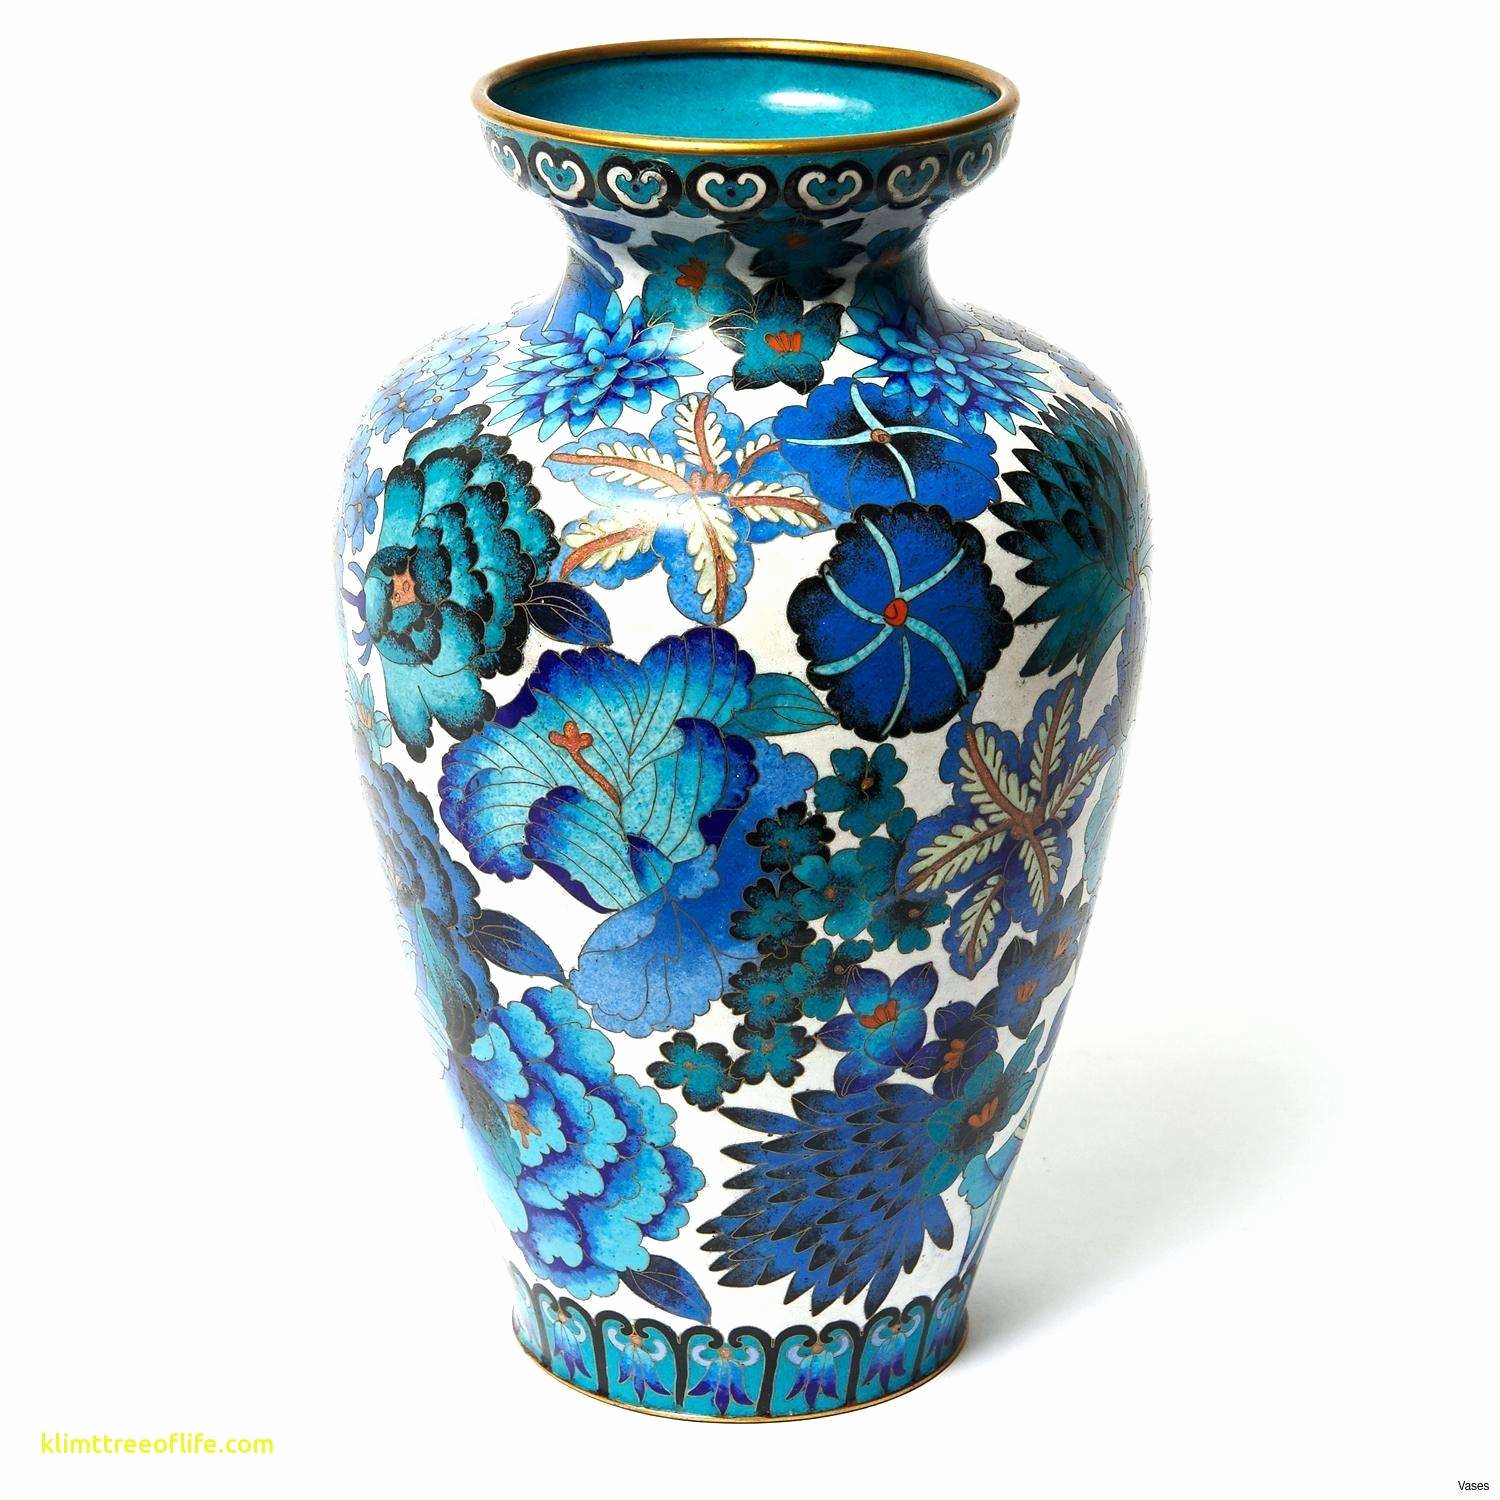 royal blue vases wholesale of beautiful collection of blue and white living rooms thecoylereport com with blue and white living rooms inspirational 40 lovely blue living room furniture image